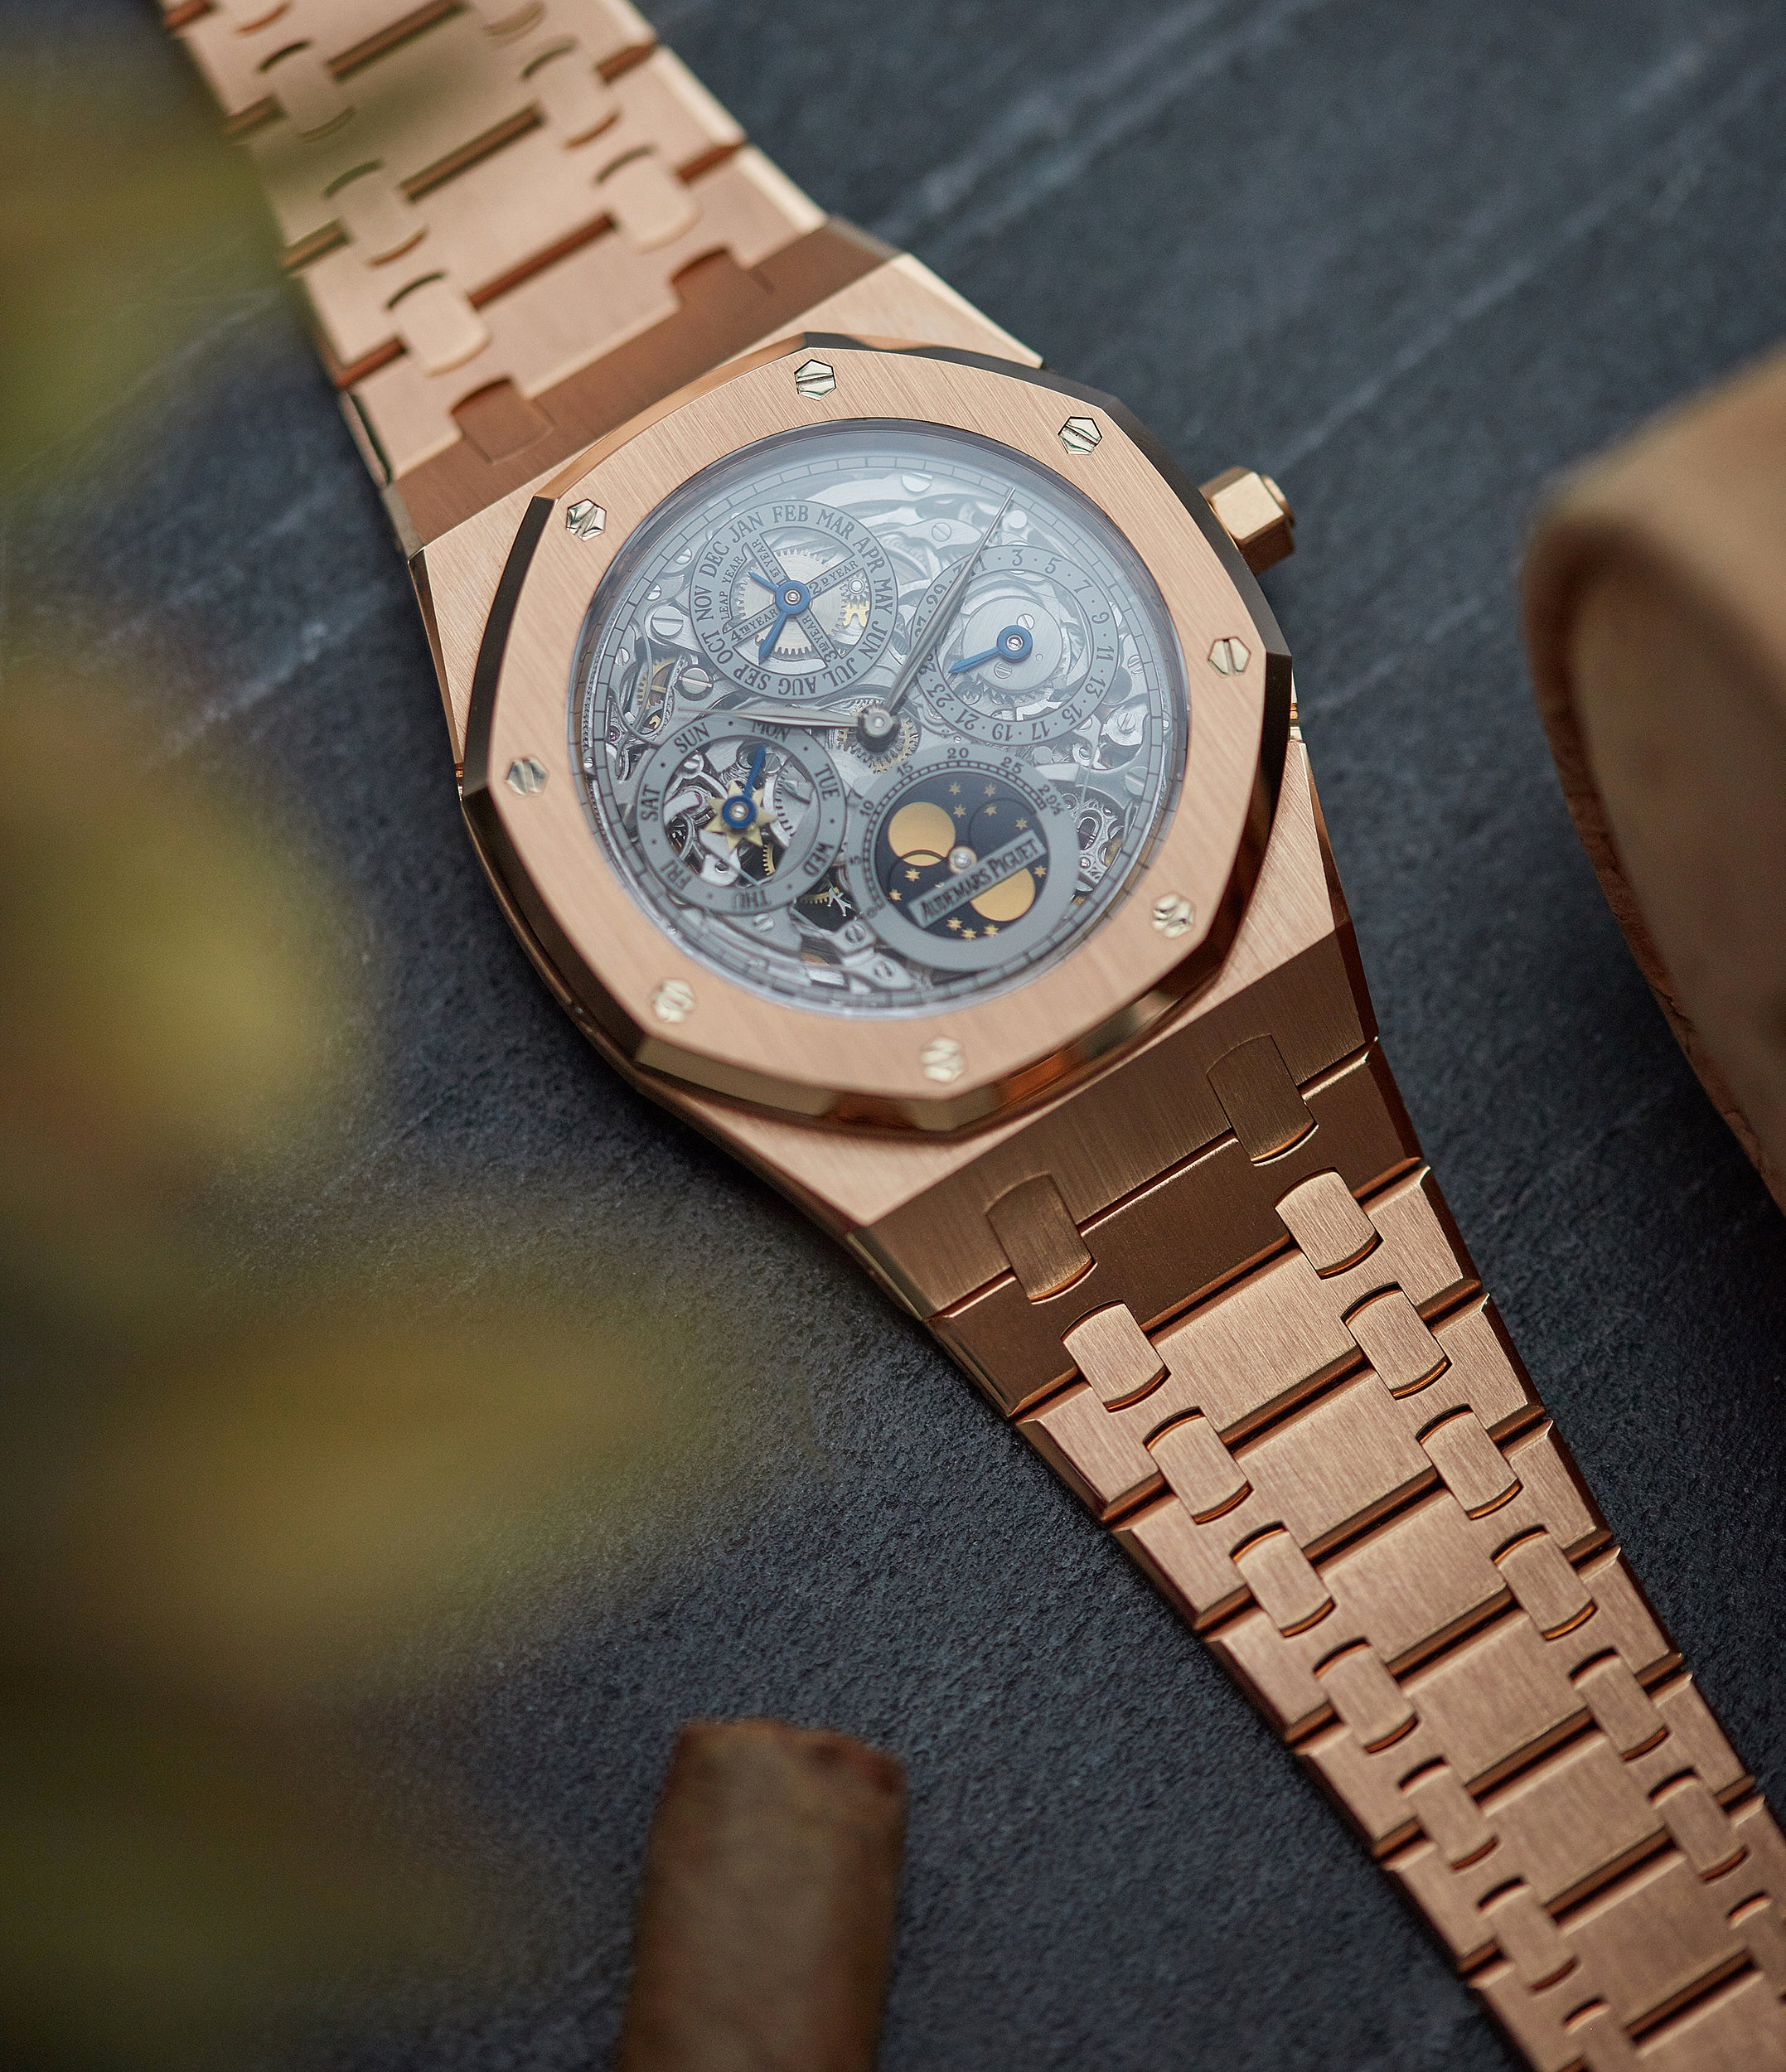 selling Audemars Piguet Royal Oak 25829OR Quantieme Perpetual Calendar rose gold skeletonised pre-owned sport watch for sale online at A Collected Man London UK specialist of rare watches